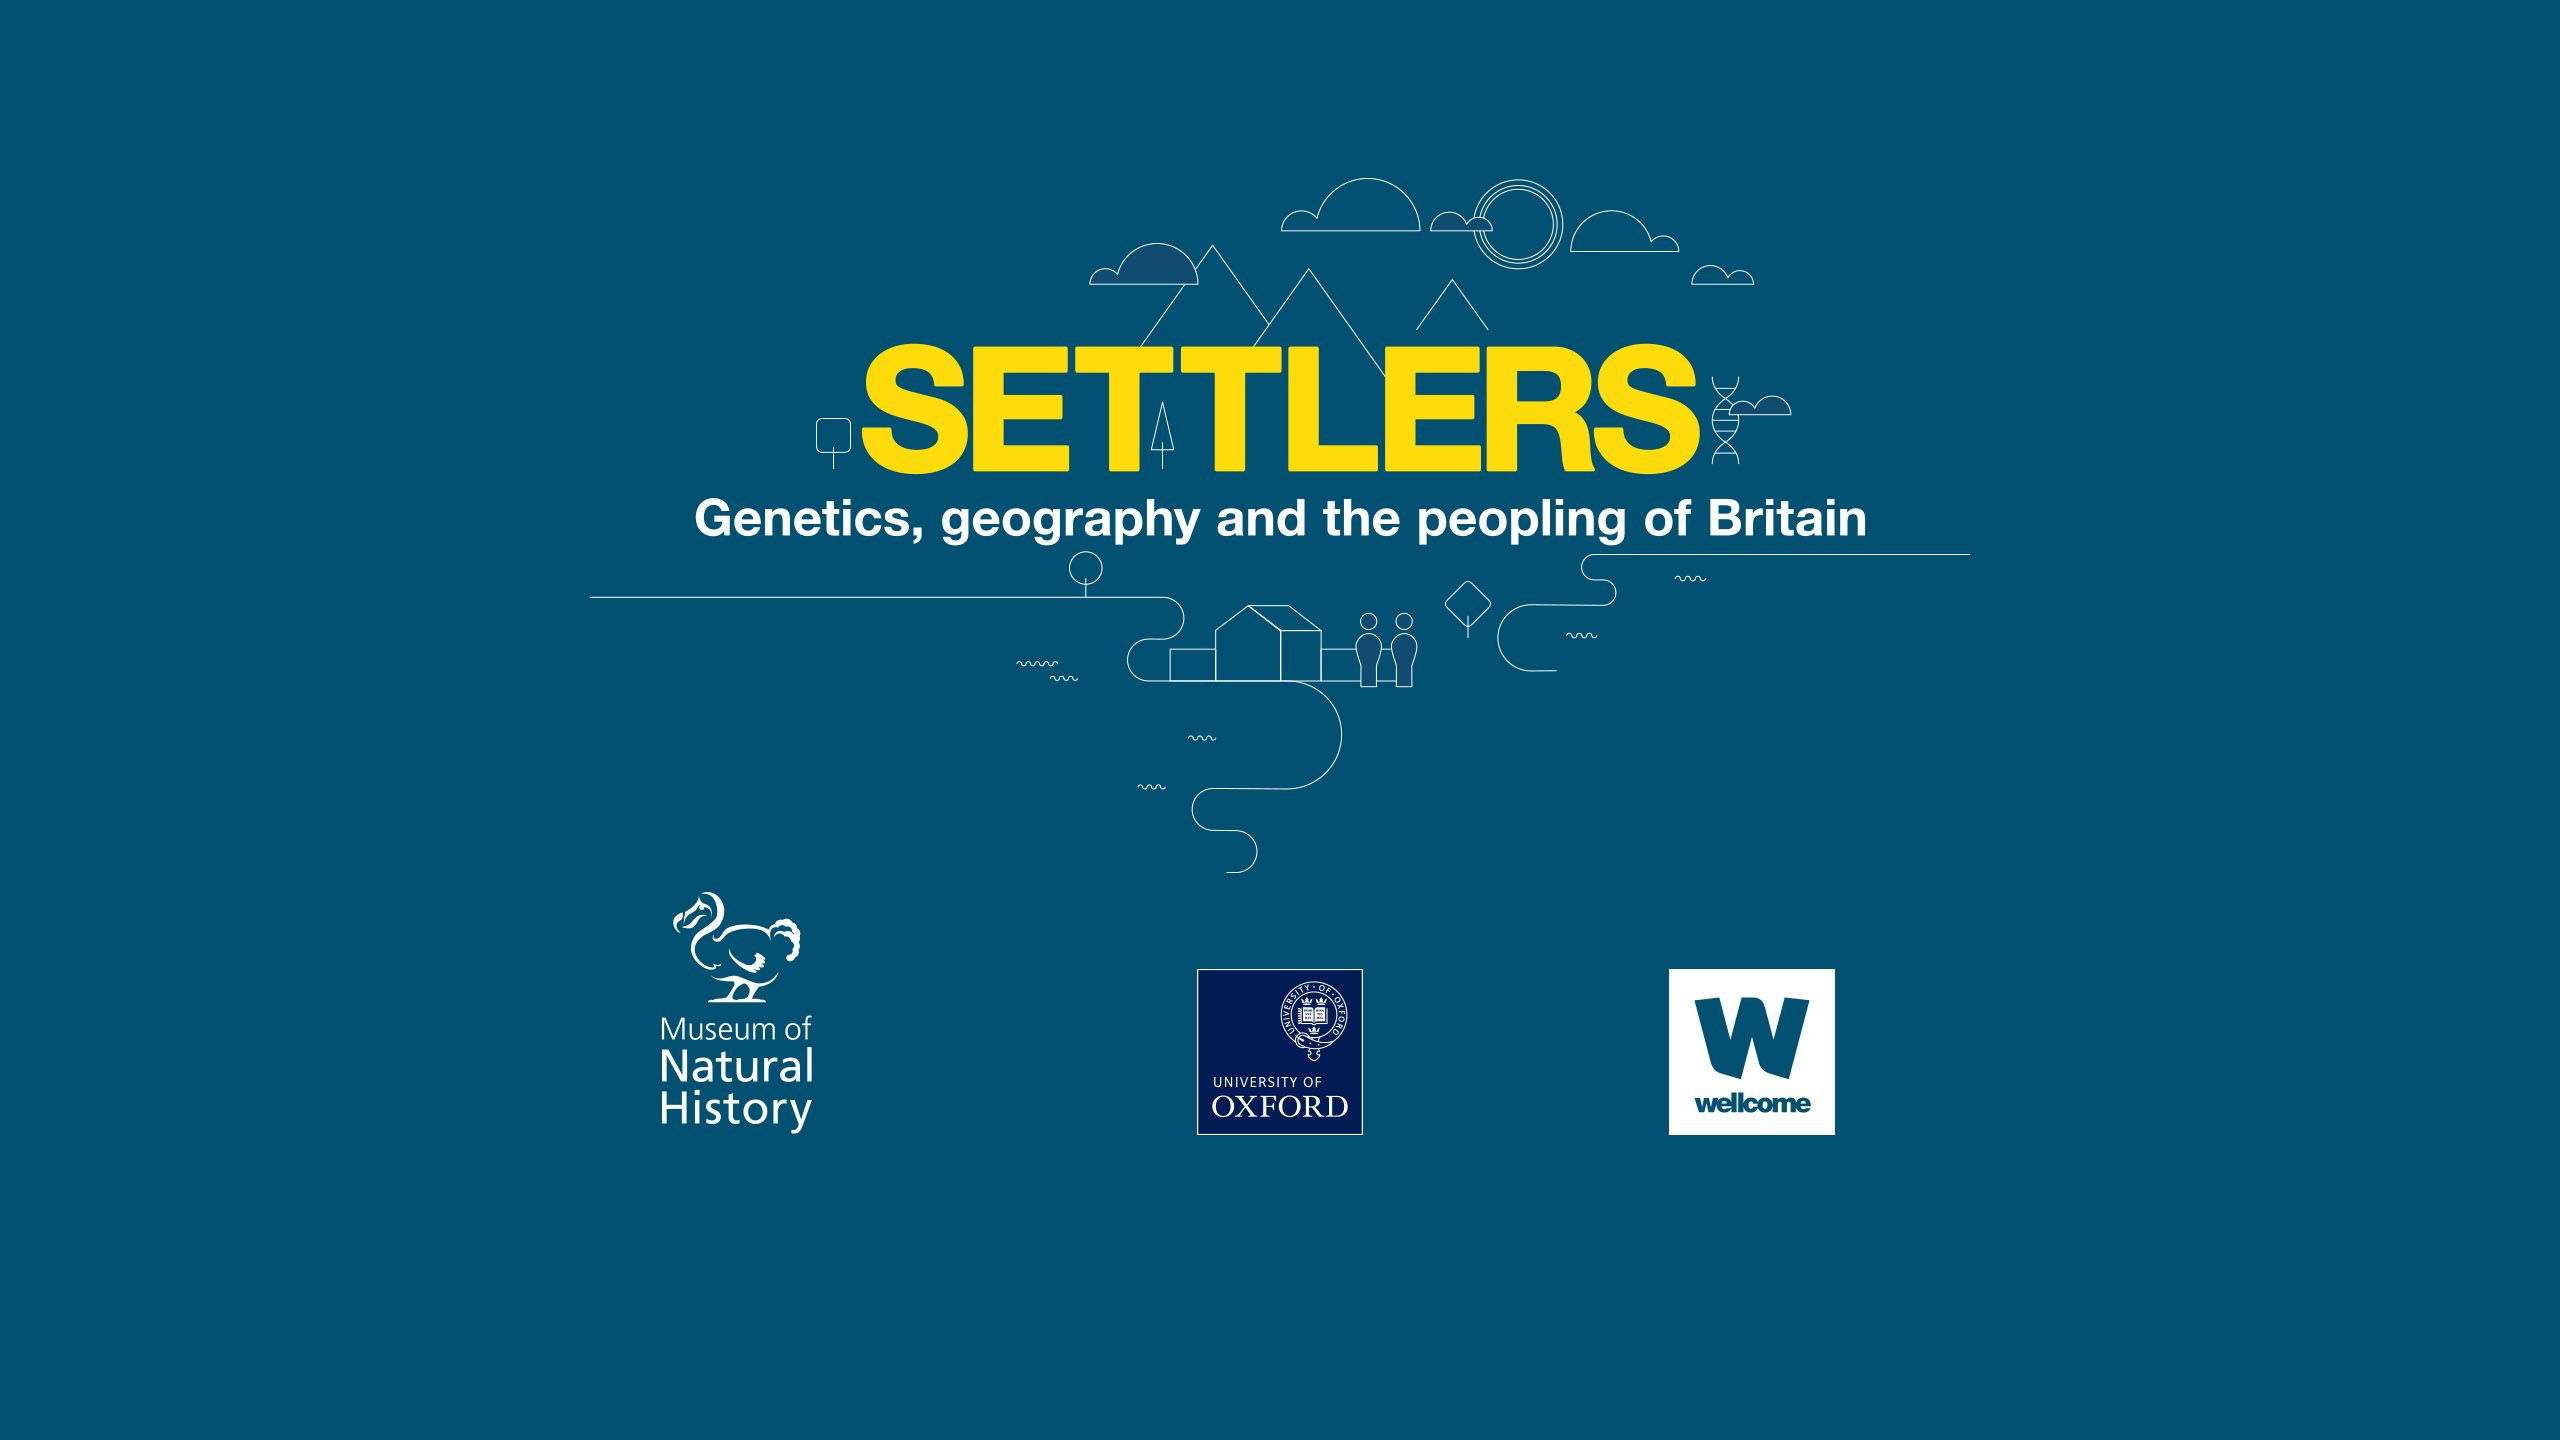 Family Genetics Study Reveals New Clues >> Settlers Genetics Geography And The Peopling Of Britain